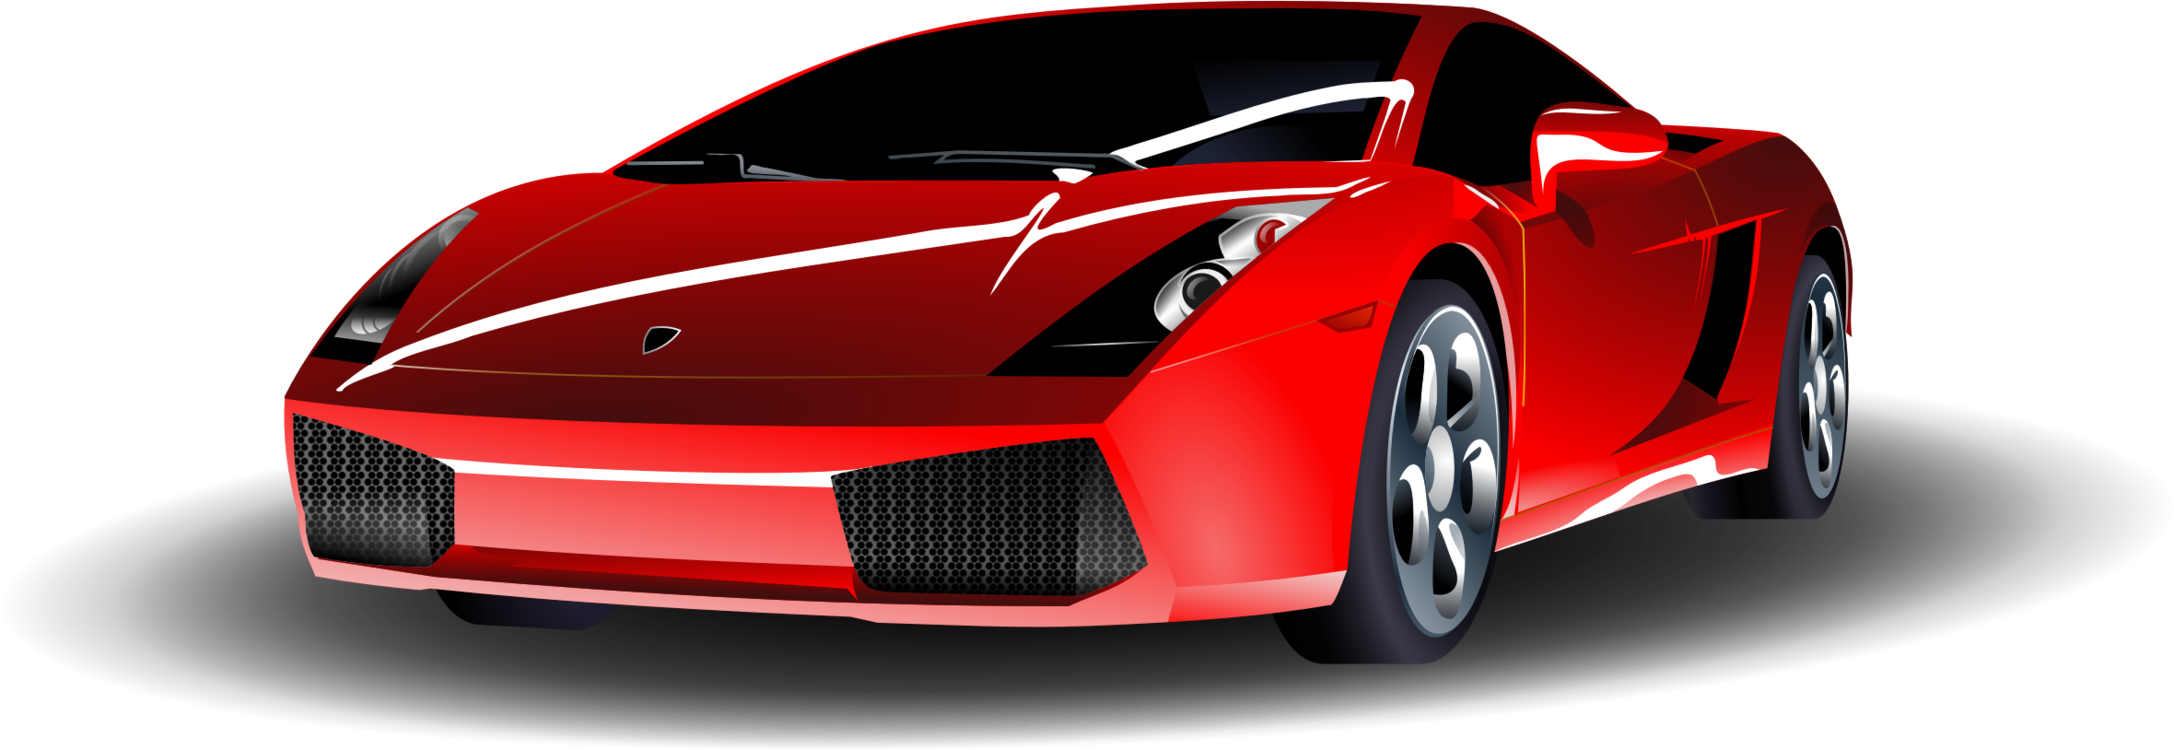 Art svg line lamborghini. Sports car ferrari s